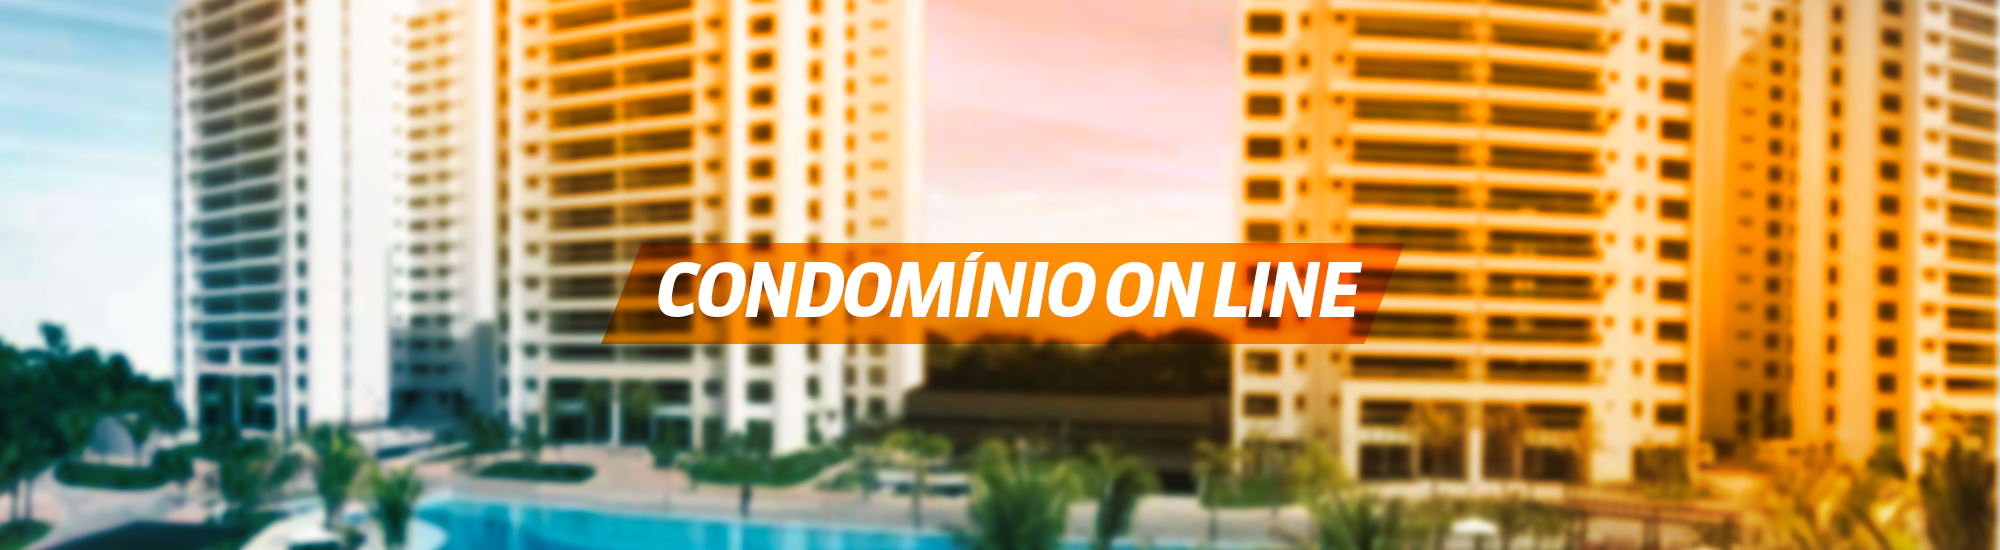 1_BANNER-SITE 1 condominio on line